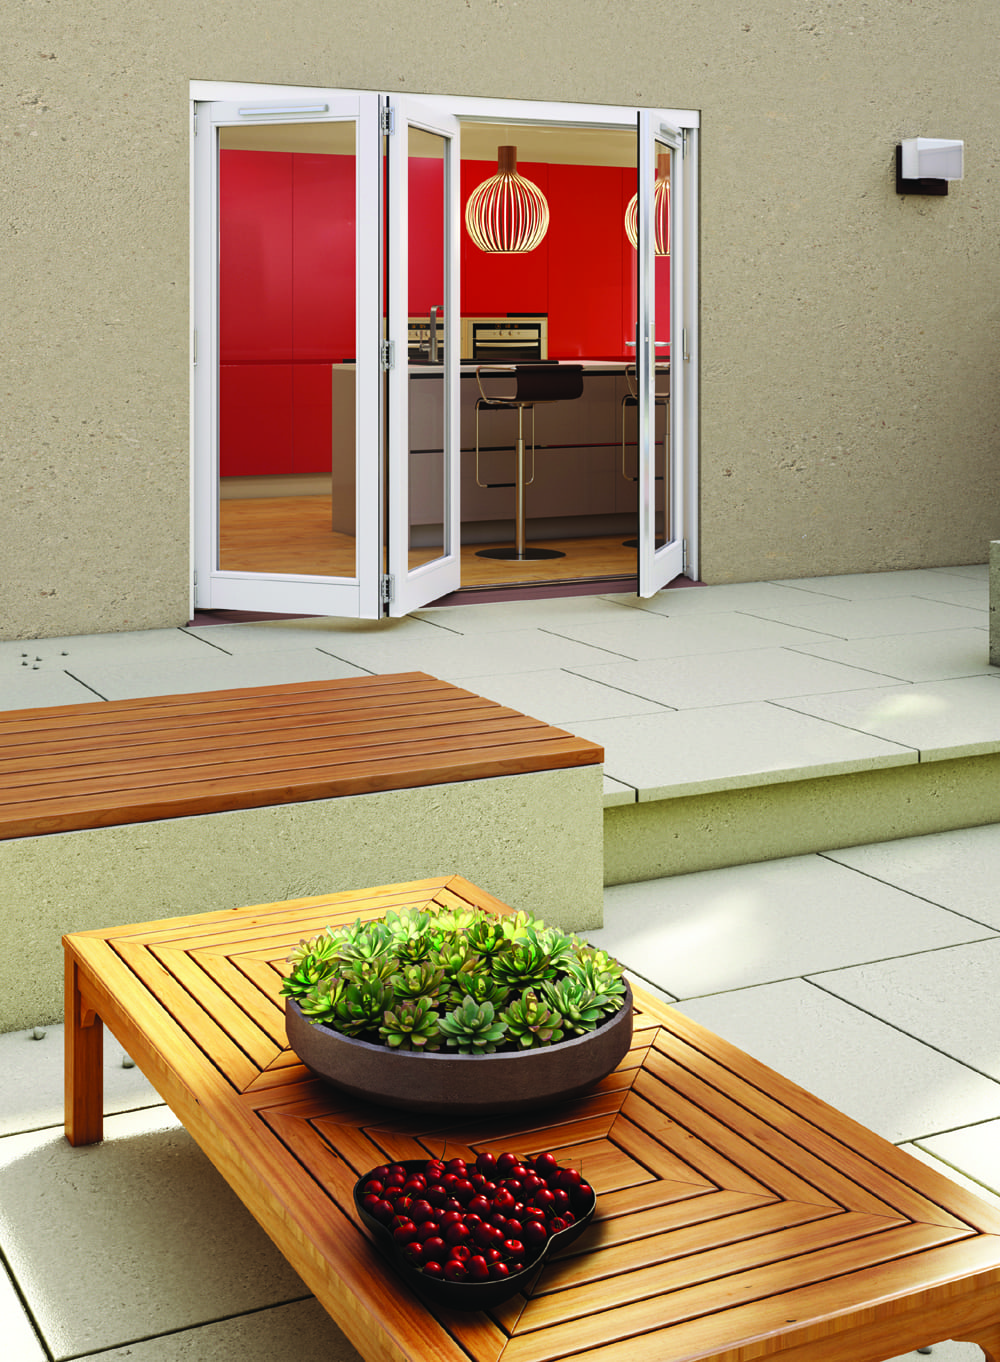 Darwin Hardwood 3 door patio